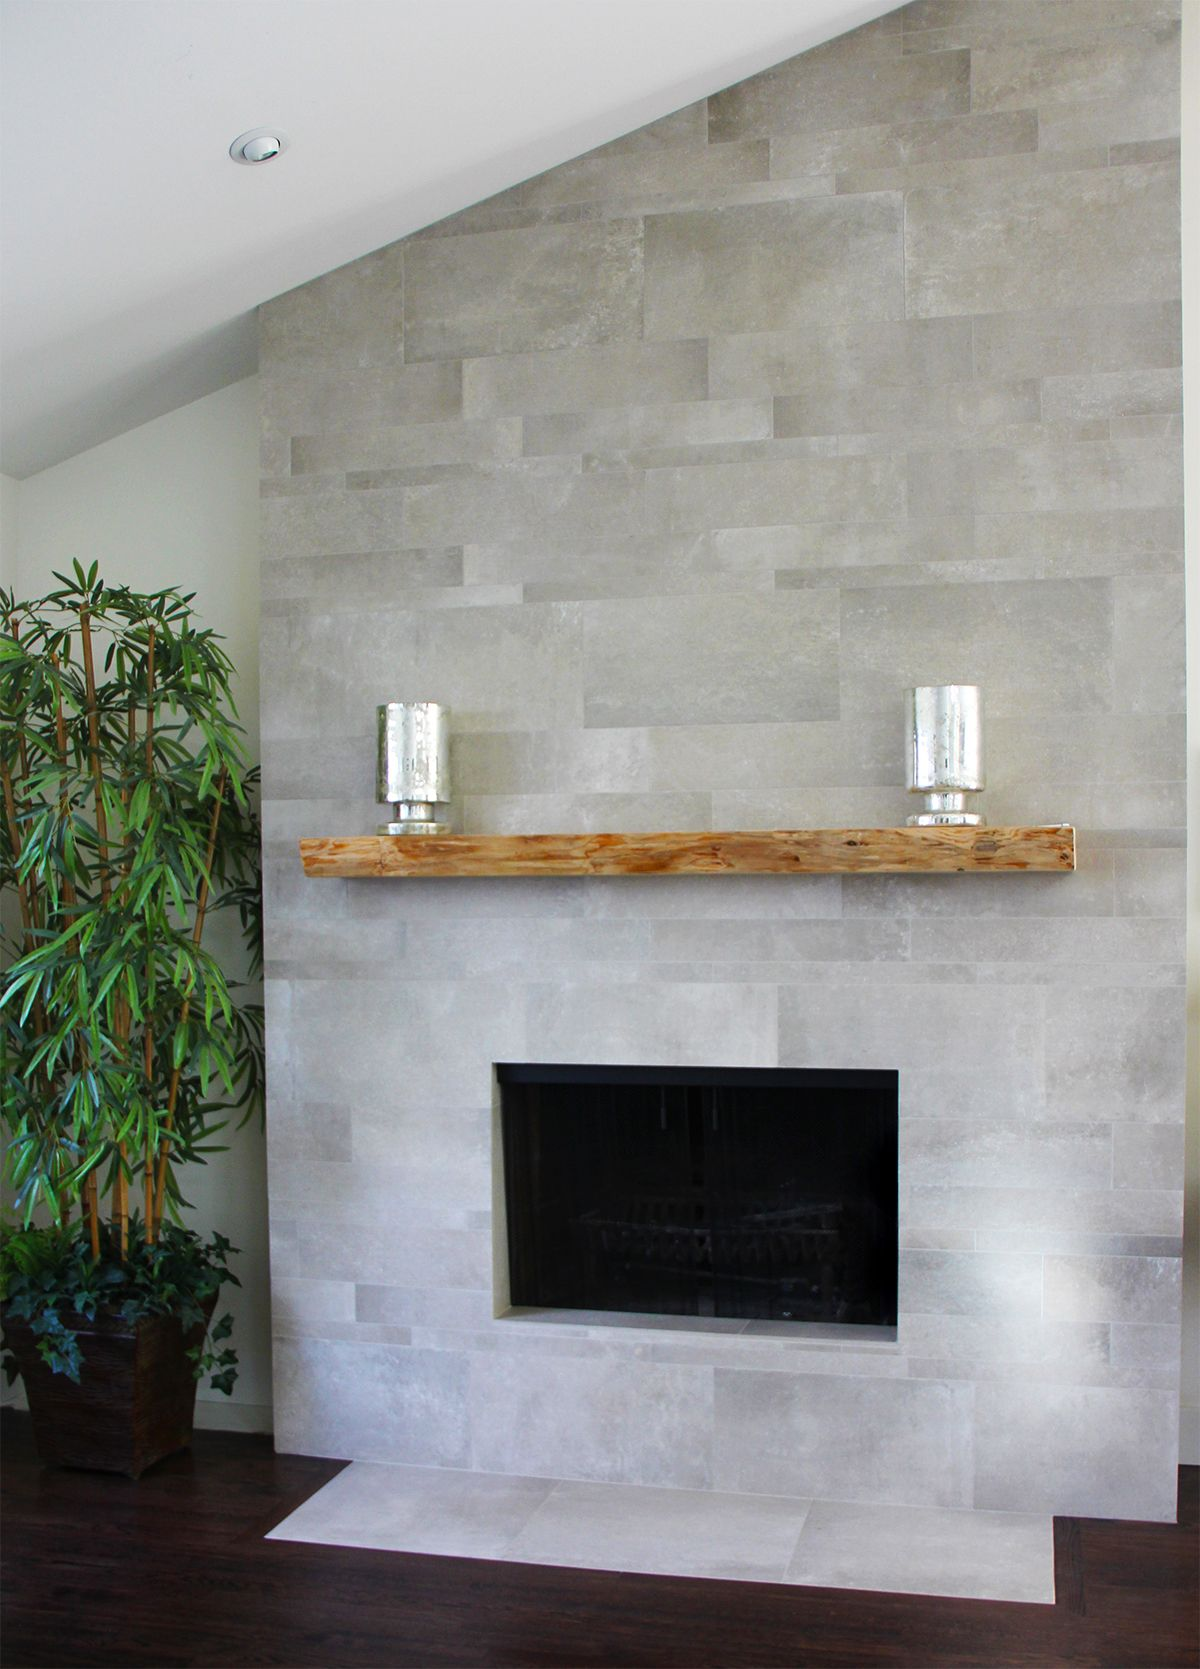 United Tile Flaviker Urban Concrete Fireplace Facing Fireplace Tile Fireplace Tile Surround